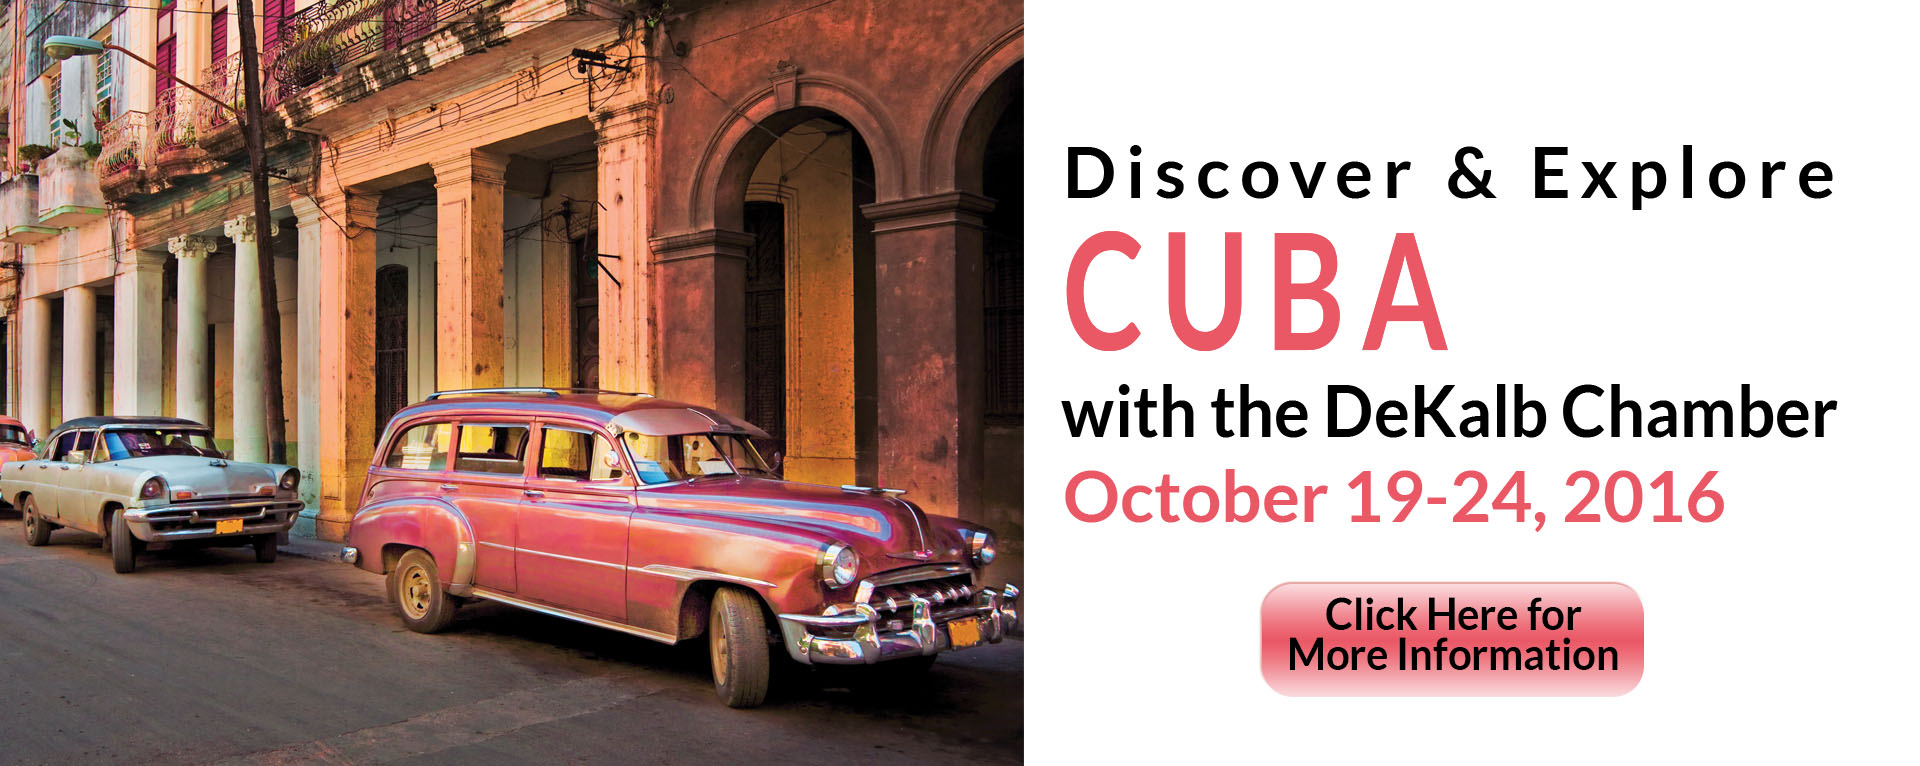 Discover & Explore CUBA with DeKalb Chamber